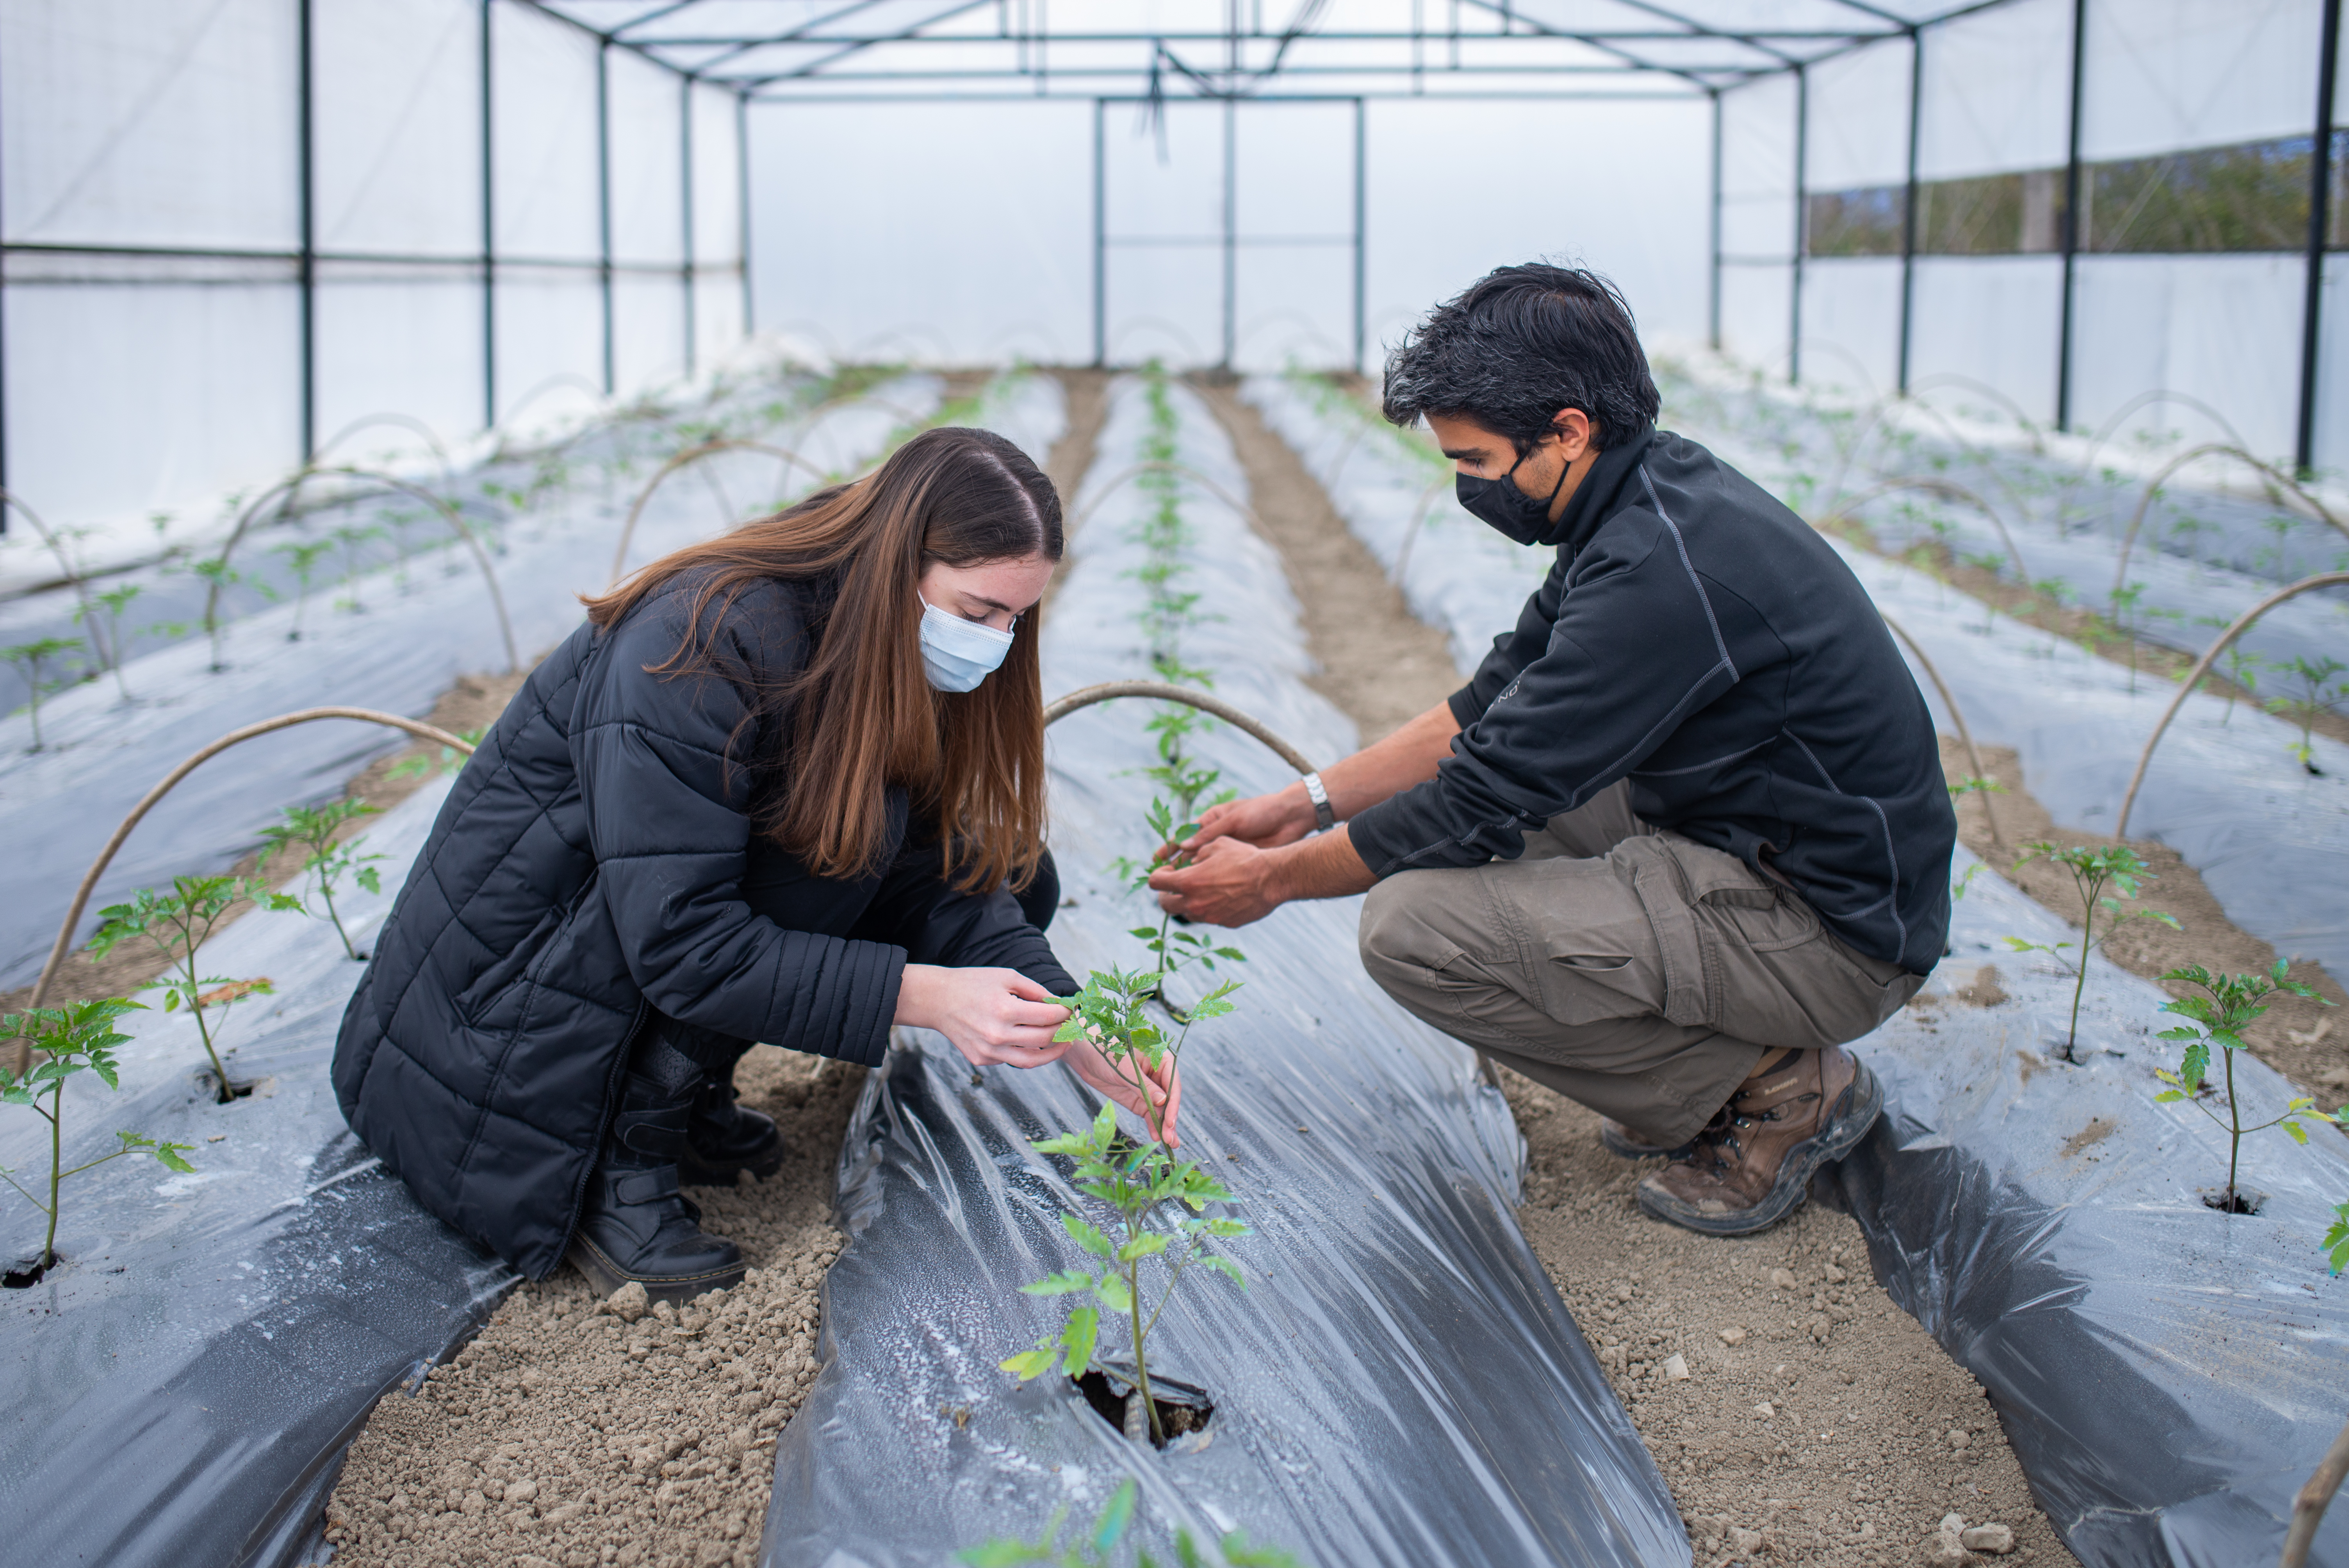 EU and FAO support to Georgian farmers: building resilience amid the pandemic